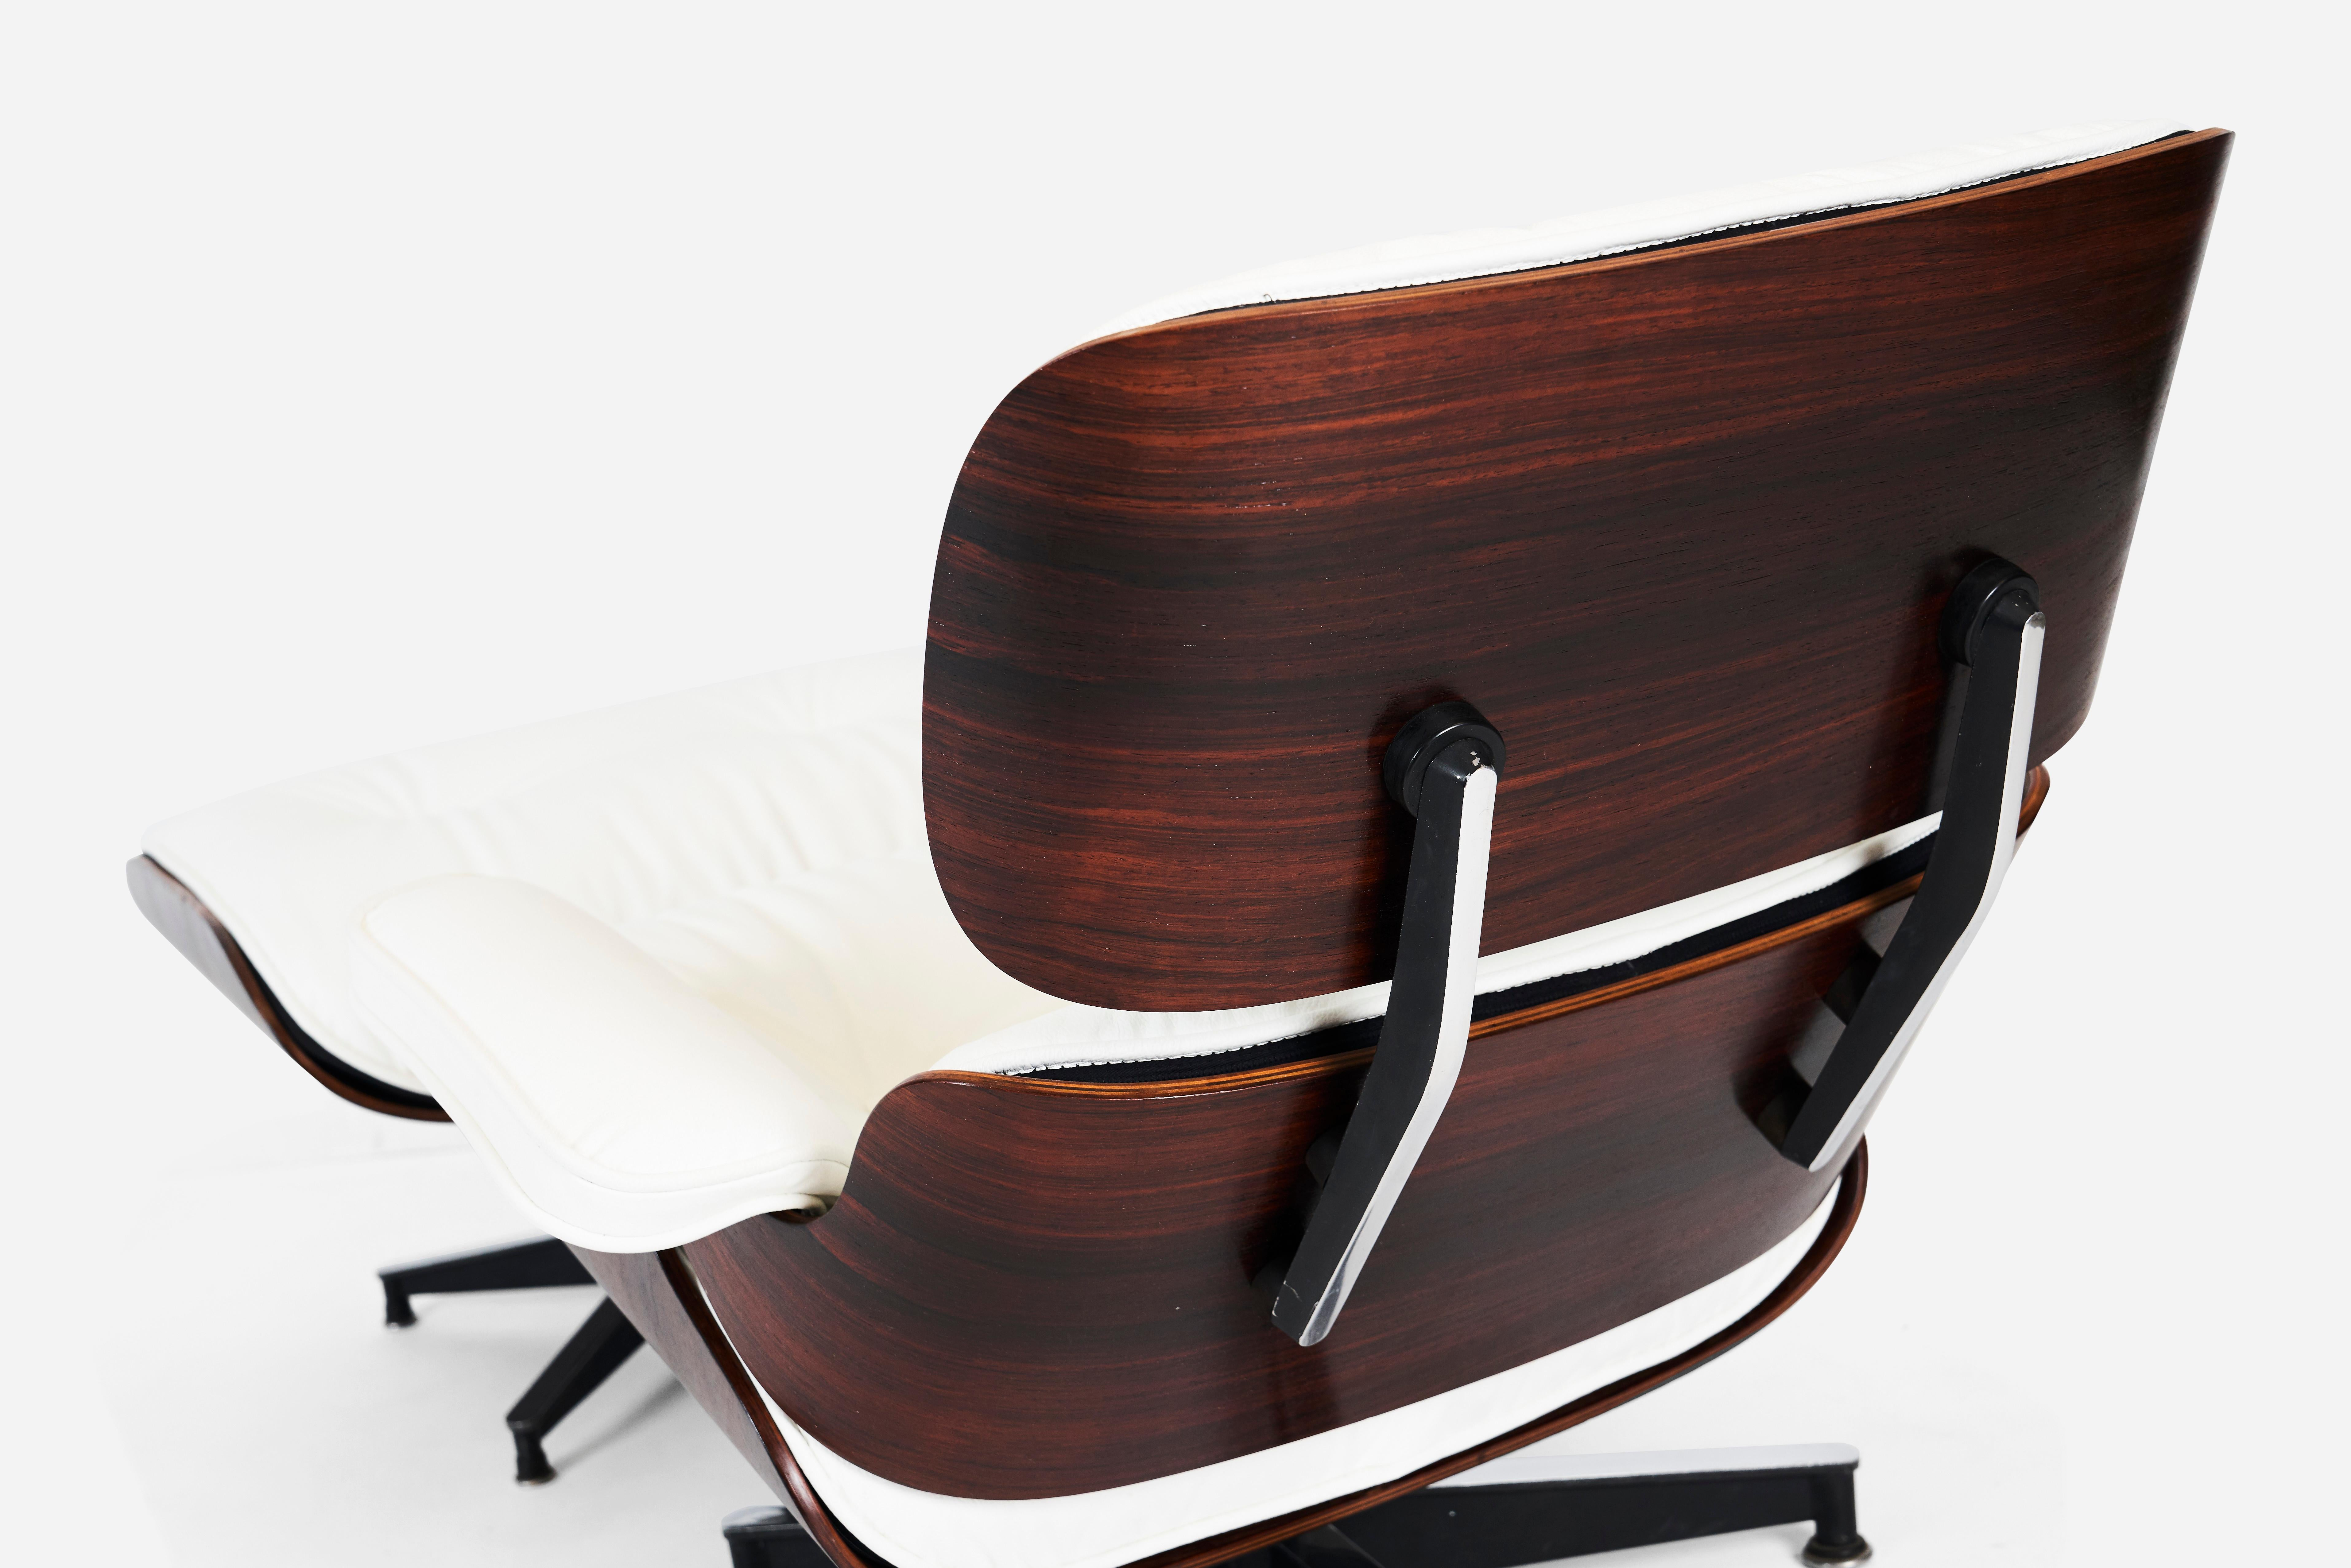 Swell Early Rosewood Charles Eames Lounge Chair For Herman Miller Caraccident5 Cool Chair Designs And Ideas Caraccident5Info